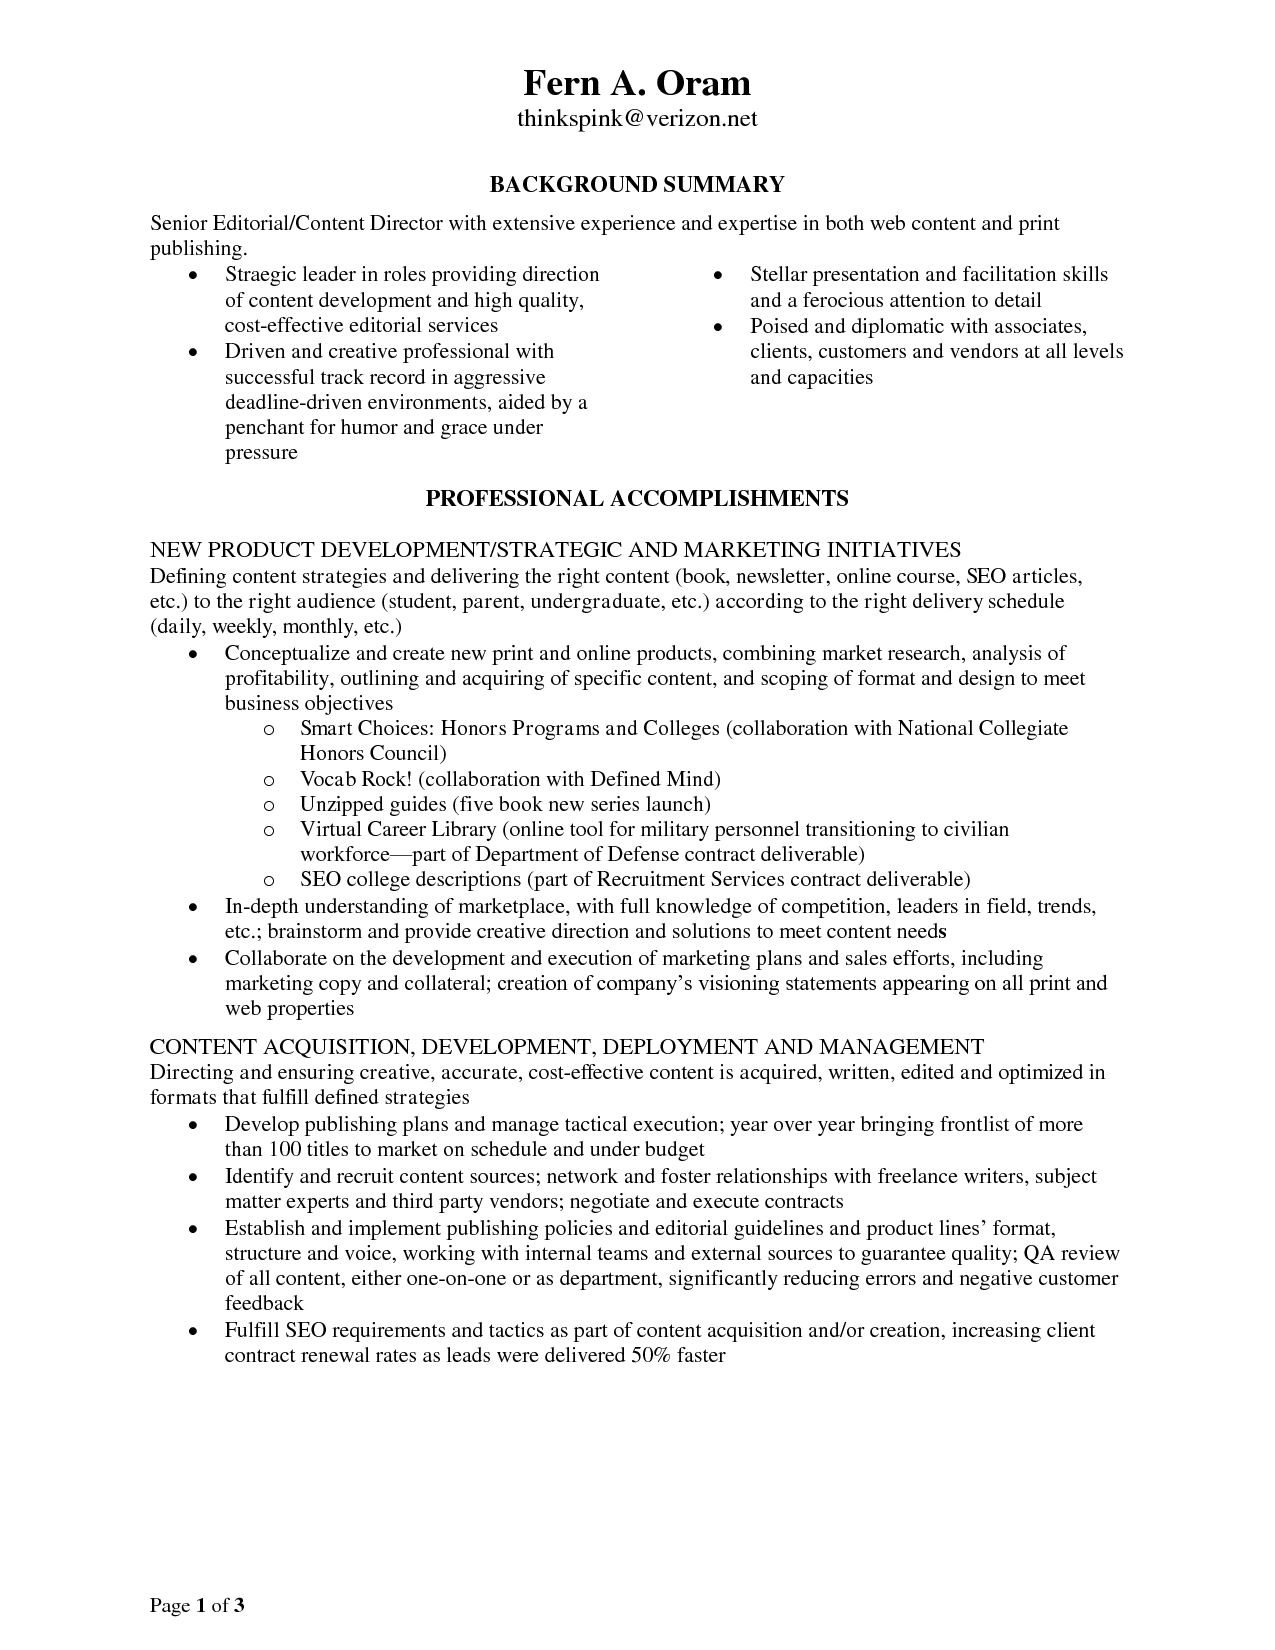 Resume Templates For Free Monster Resume Templates Free Monster Resume Templates Free